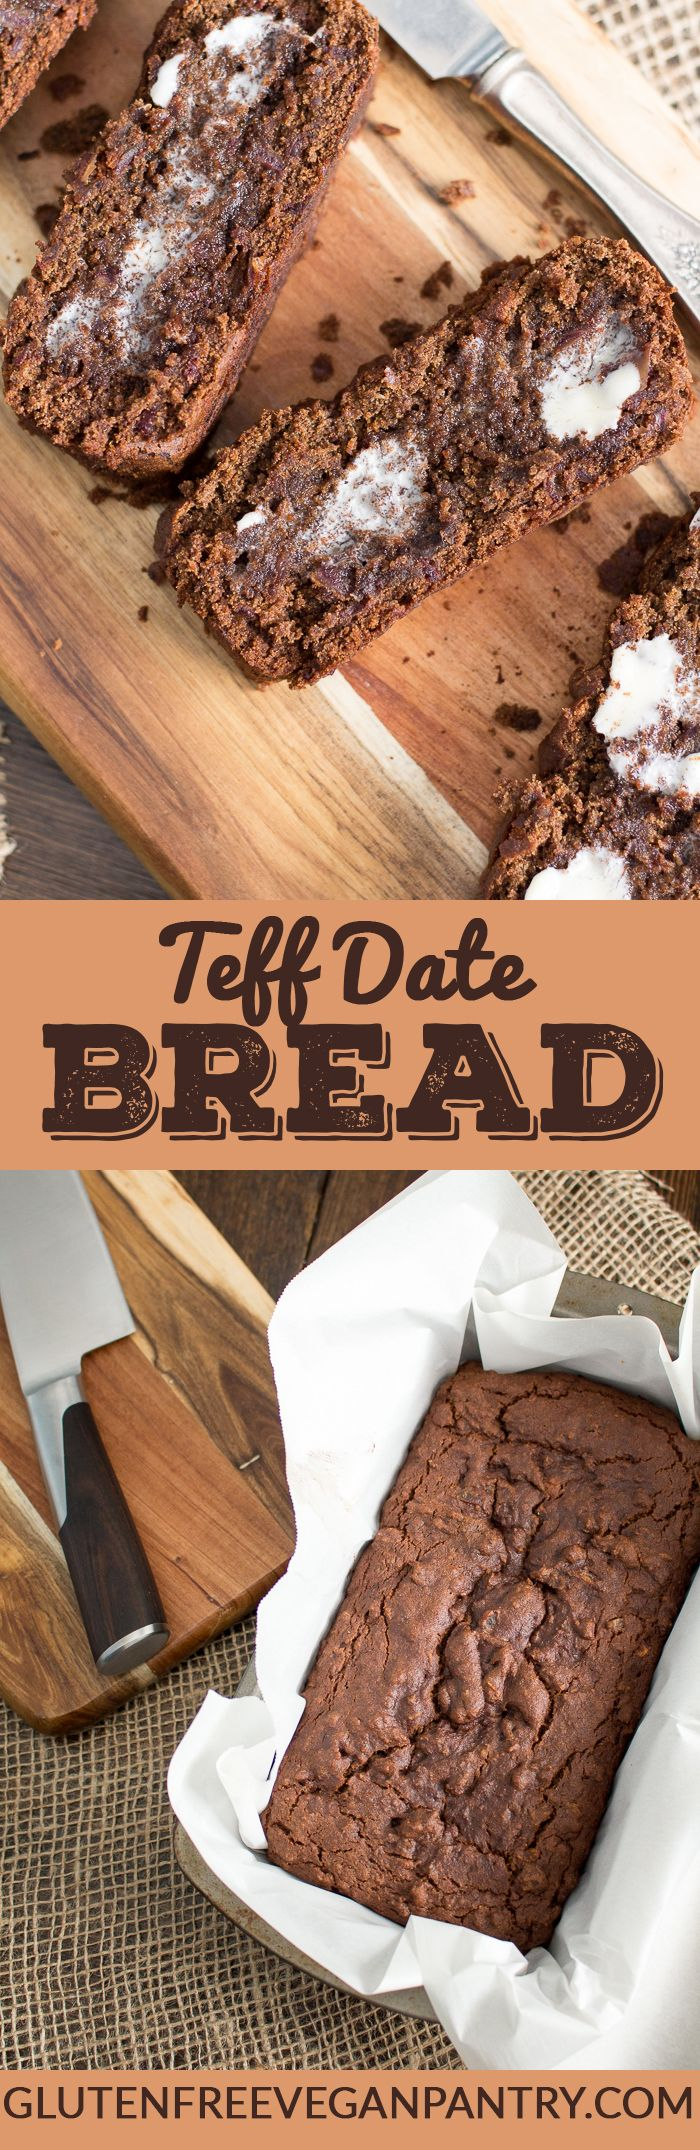 Teff Date Bread - Vegan & Gluten-free. This loaf is moist, loaded with flavour and super aromatic - delish! glutenfreeveganpantry.com